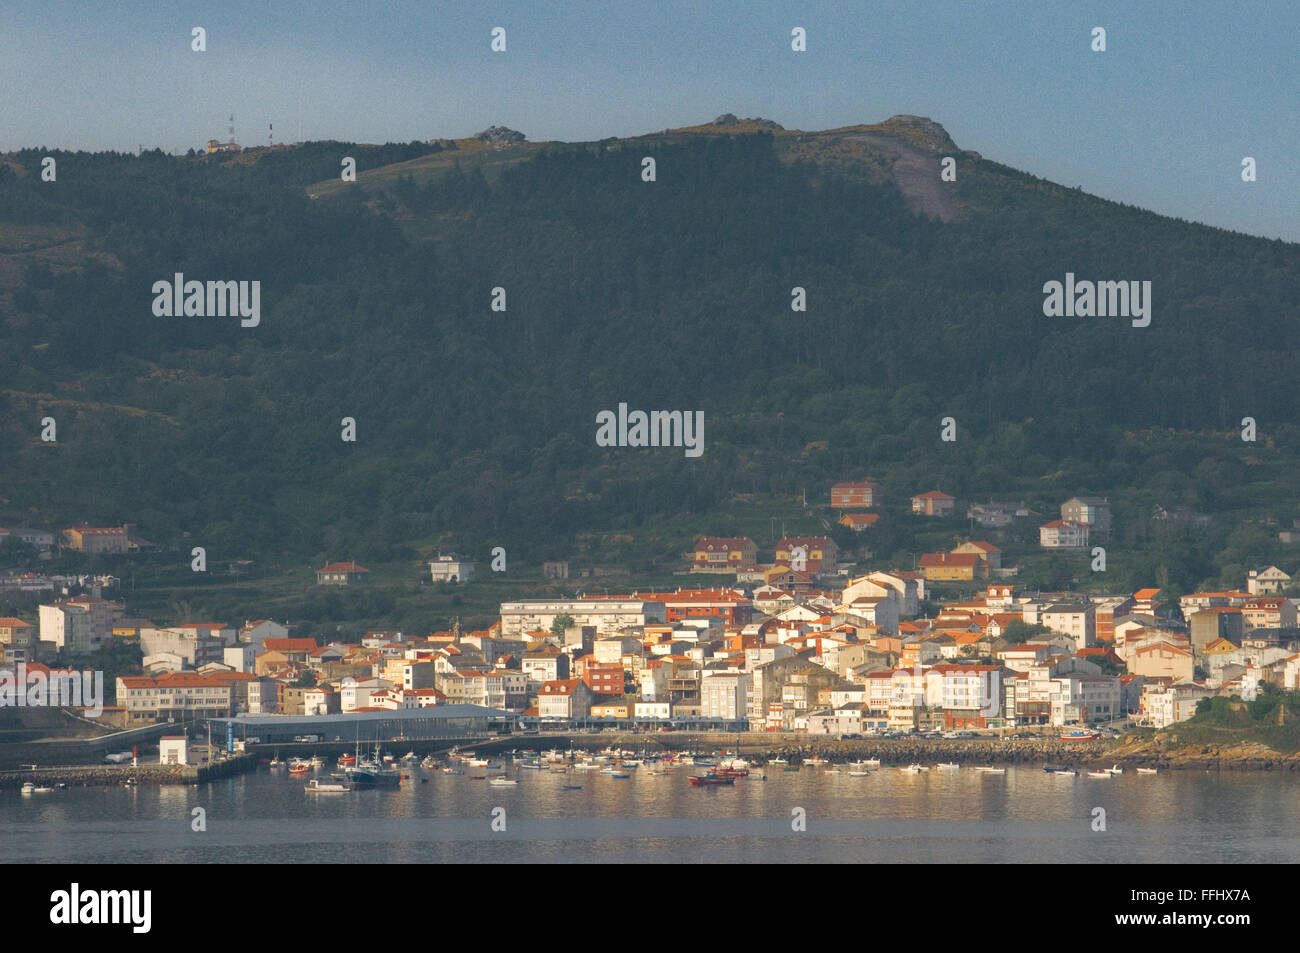 Way of St. James, Jacobean Route. Fisterra. Finisterre, A Couruña. St. James's Way, St. James's Path, - Stock Image